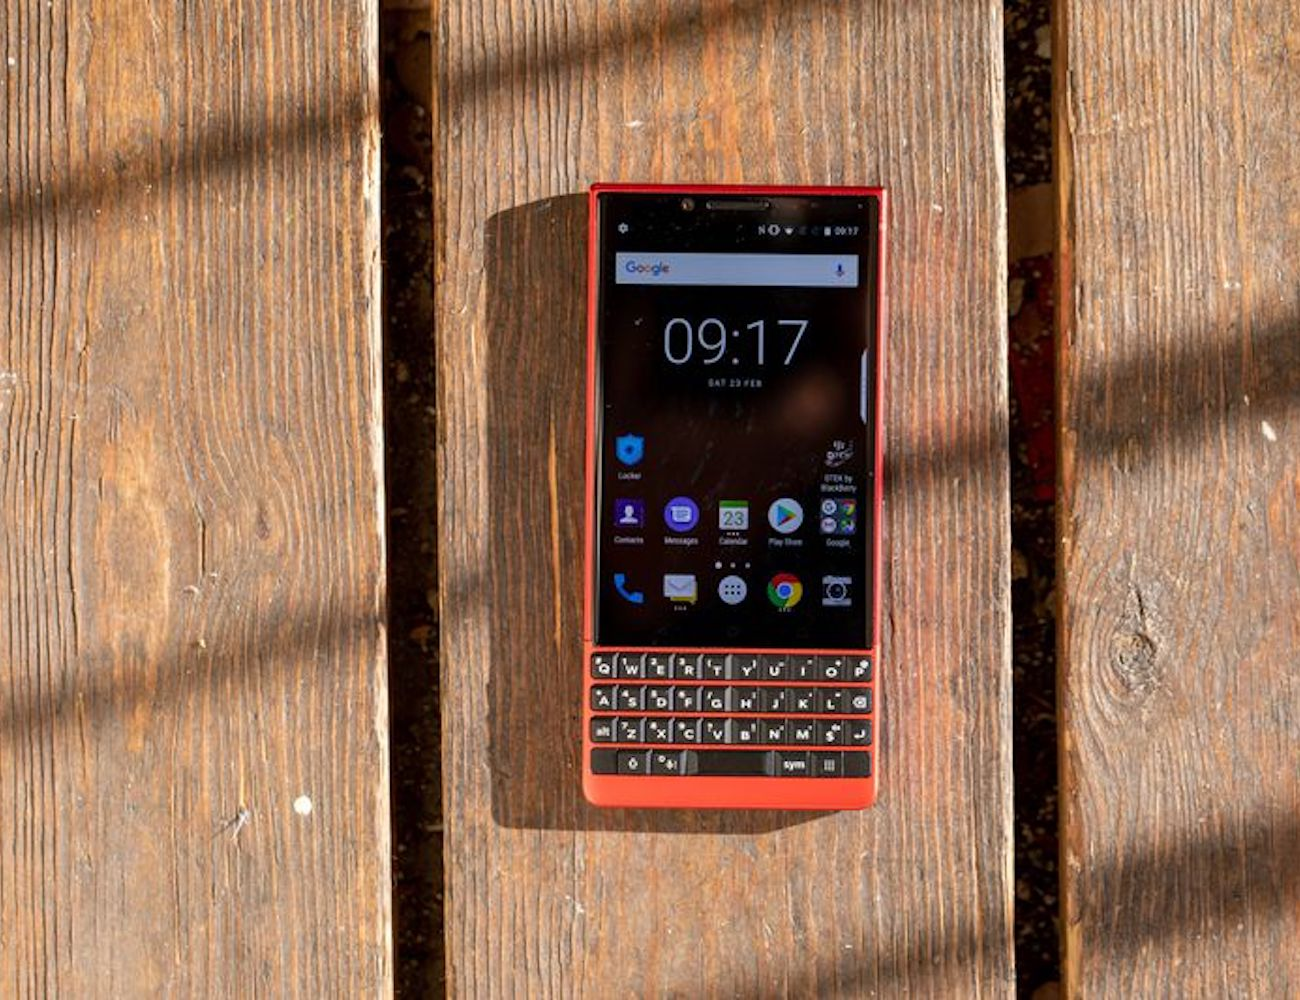 BlackBerry KEY2 RED Edition Keyboard Smartphone is built for speed